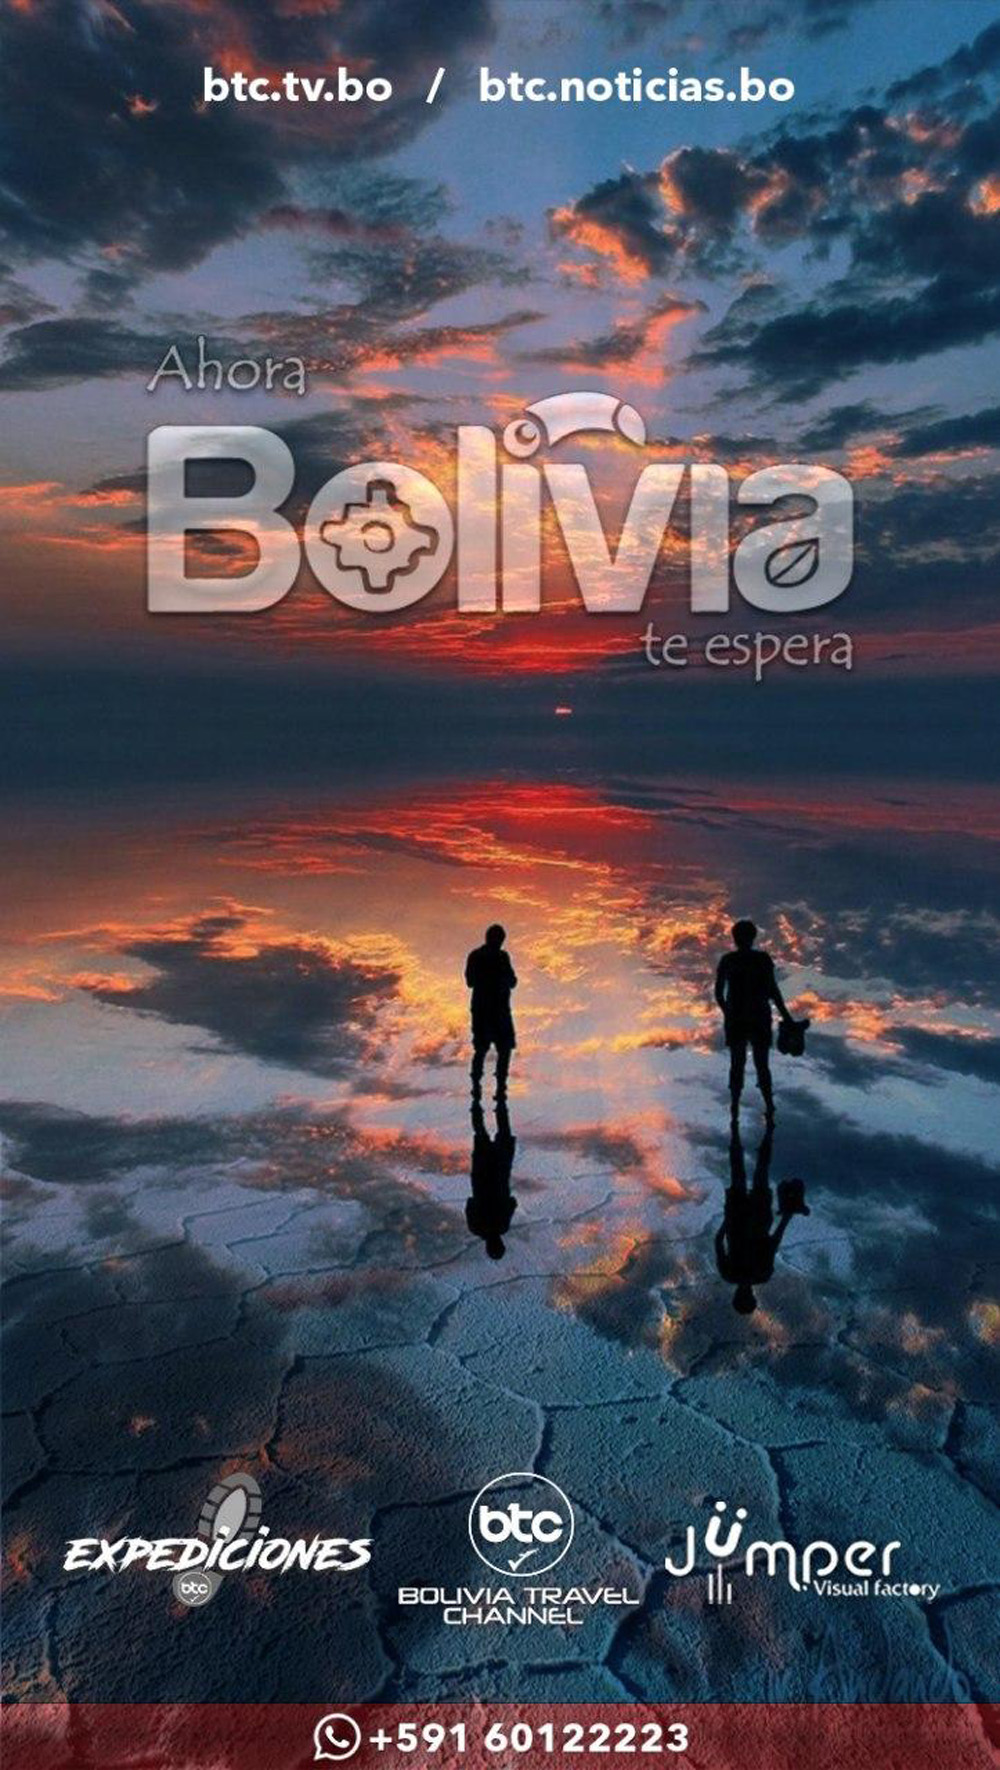 Bolivia Travel Channel